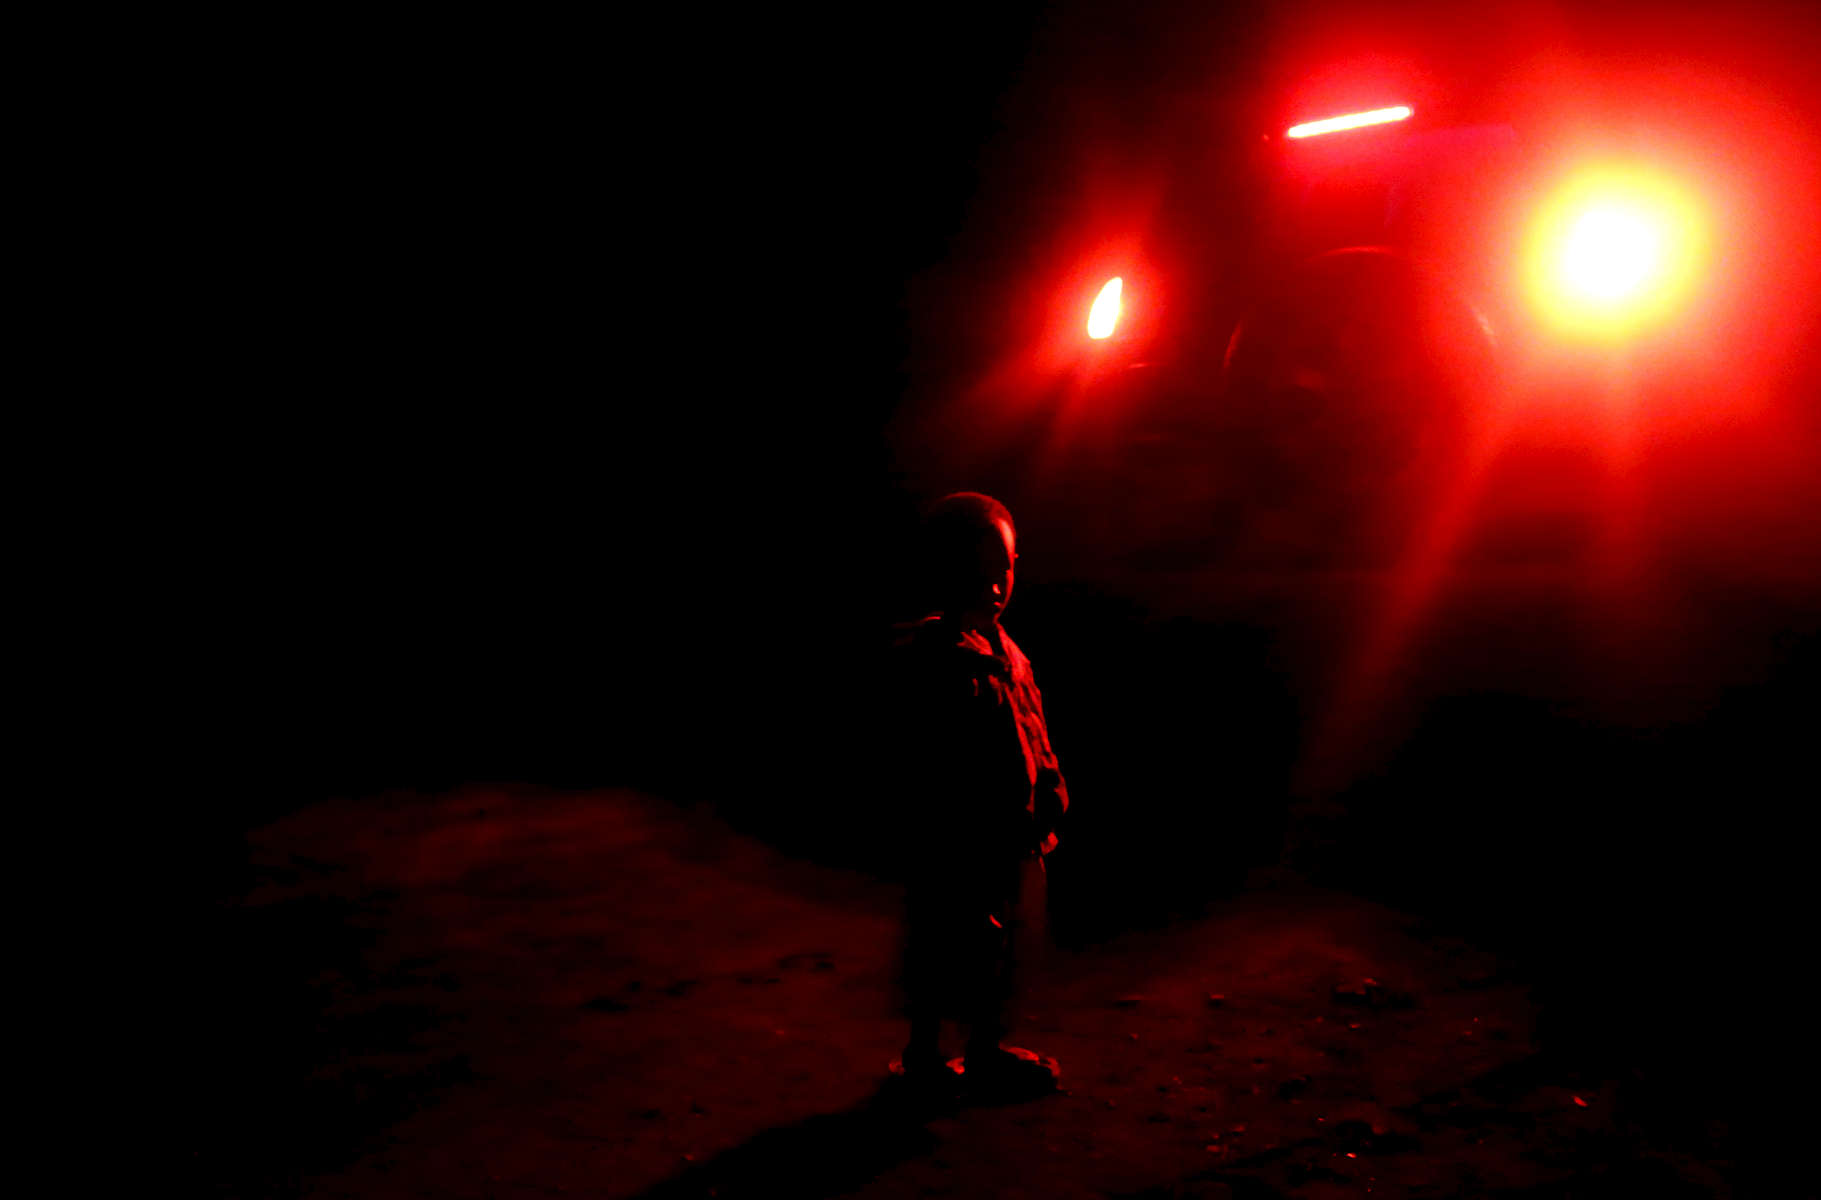 A child stands behind a car's stop lights, in near full darkness in the village of Mount Kigali, Rwanda in the evening of November 13, 2017. Nearly half of all Rwandans live in poverty, relying on small-scale farming for survival without gas or electricity. With so many women and children spending hours of the day foraging for wood used for cooking and light, often damaging their eyes, lungs, the forests and atmosphere, a little inventiveness helps. Enter cow and enter pig — not just as a source of food, but also the heat needed to cook it. Or more specifically, their poo — the fuel fed to a biogas digester, a tank that coverts organic waste into methane. Photographs by: Yana Paskova